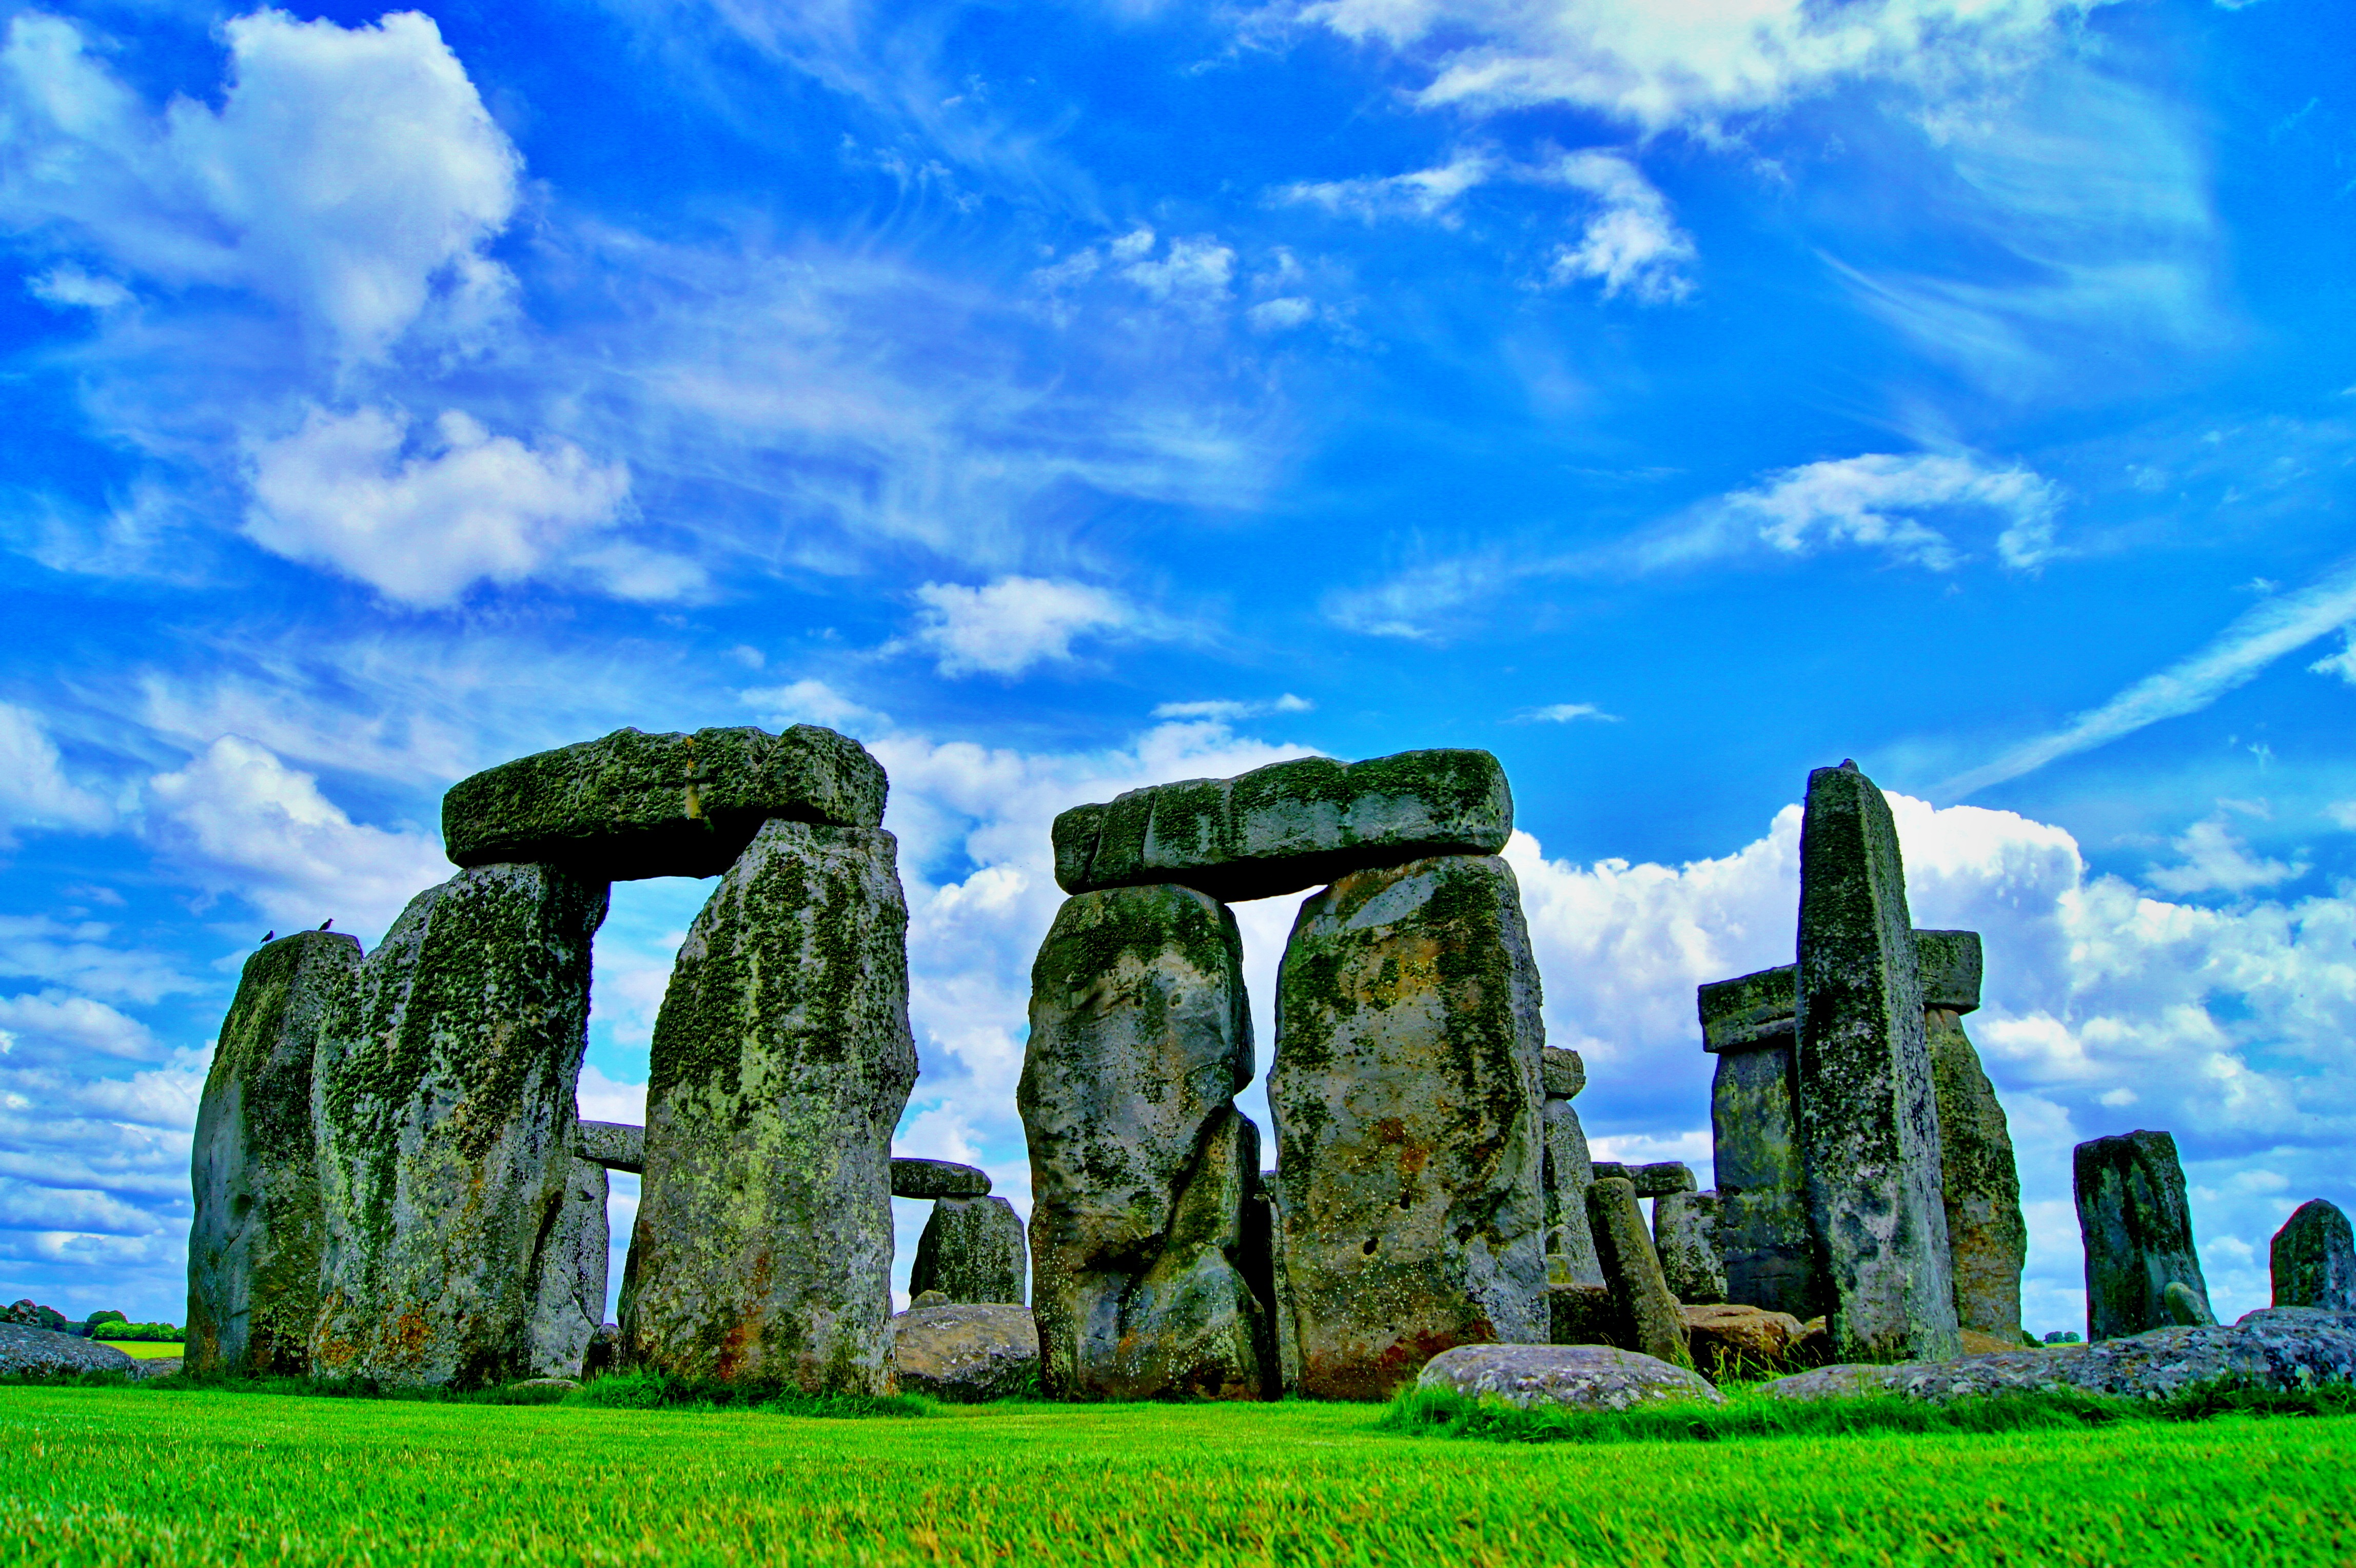 145310 download wallpaper Nature, Stonehenge, England, Monument, Stones screensavers and pictures for free